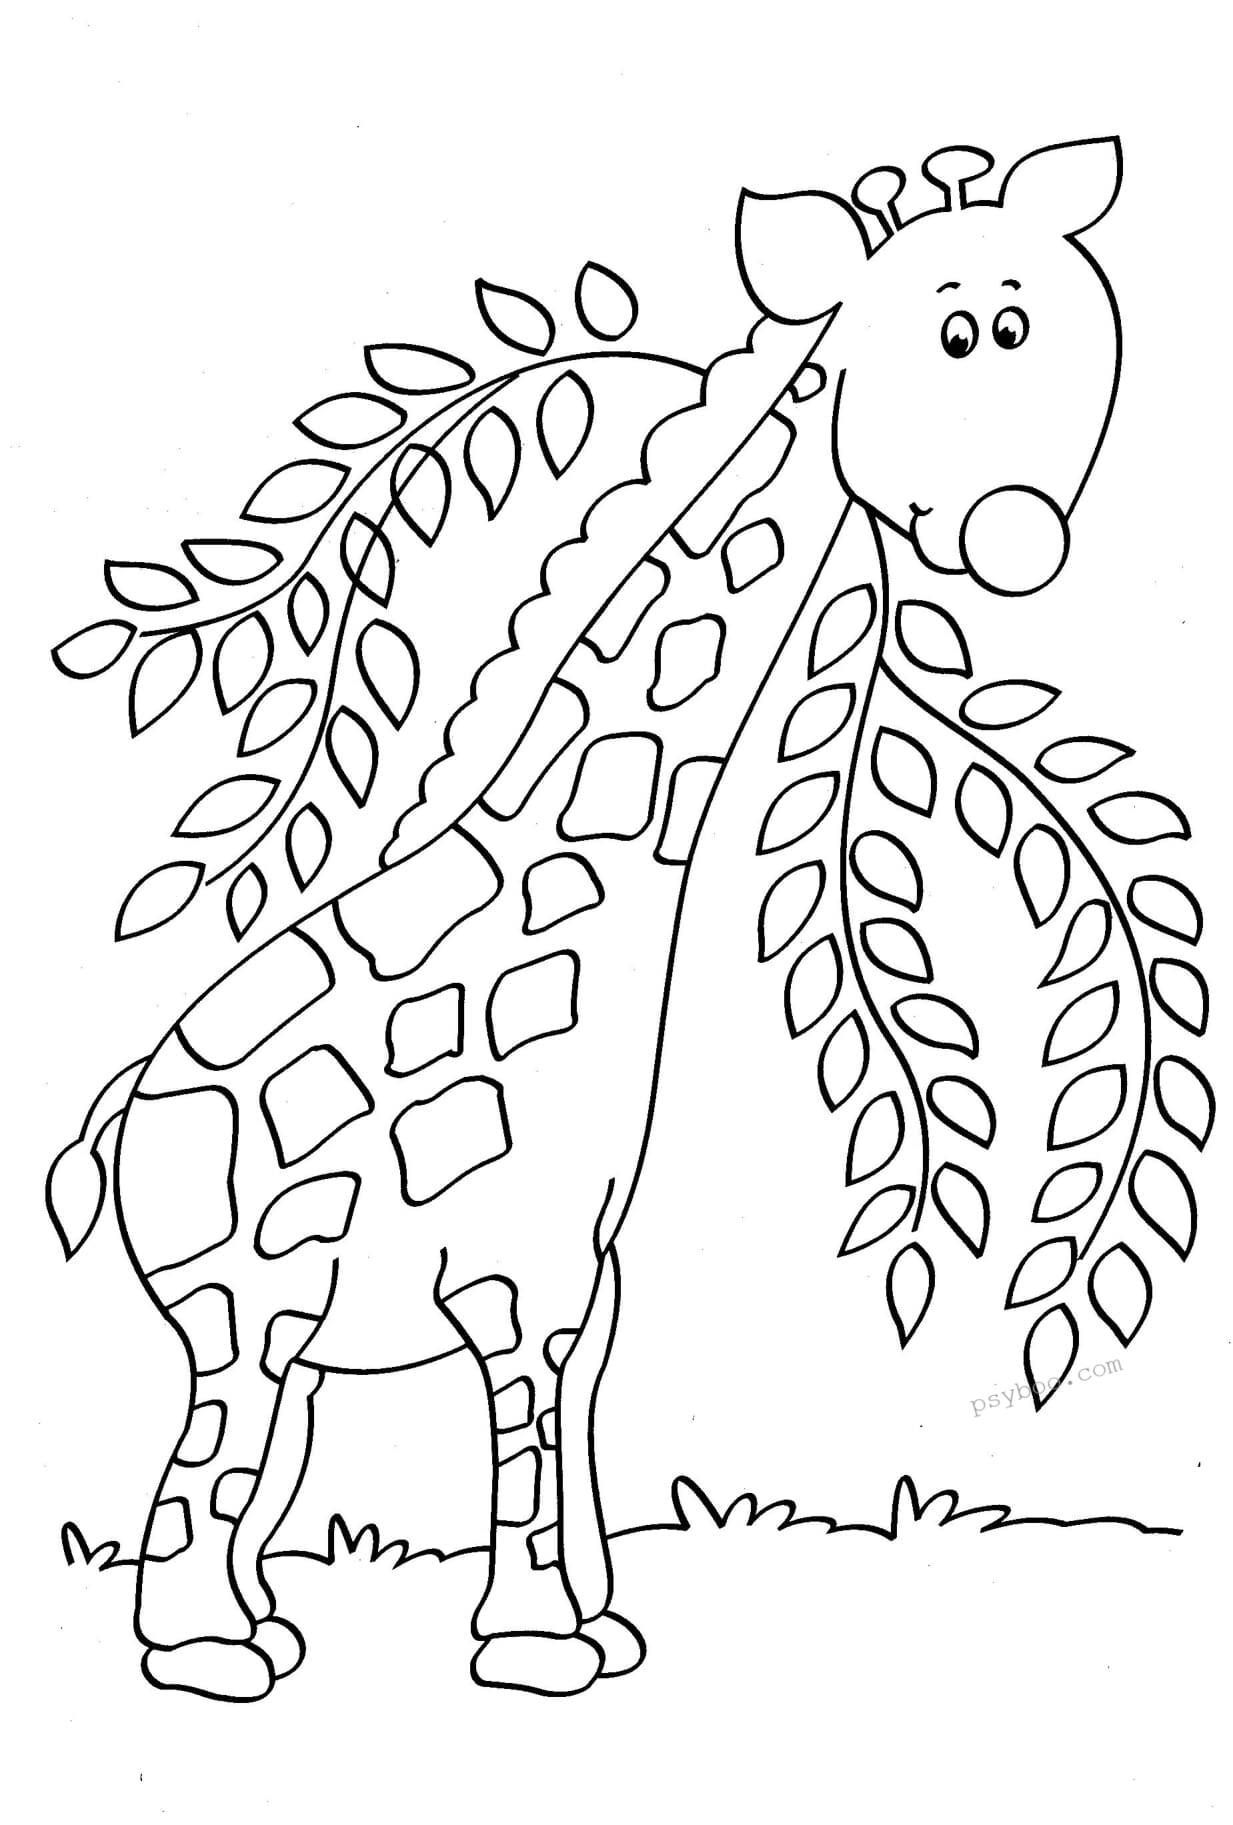 Cute Baby Giraffe Coloring Page For Toddlers In 2020 Giraffe Coloring Pages Baby Giraffe Baby Cartoon